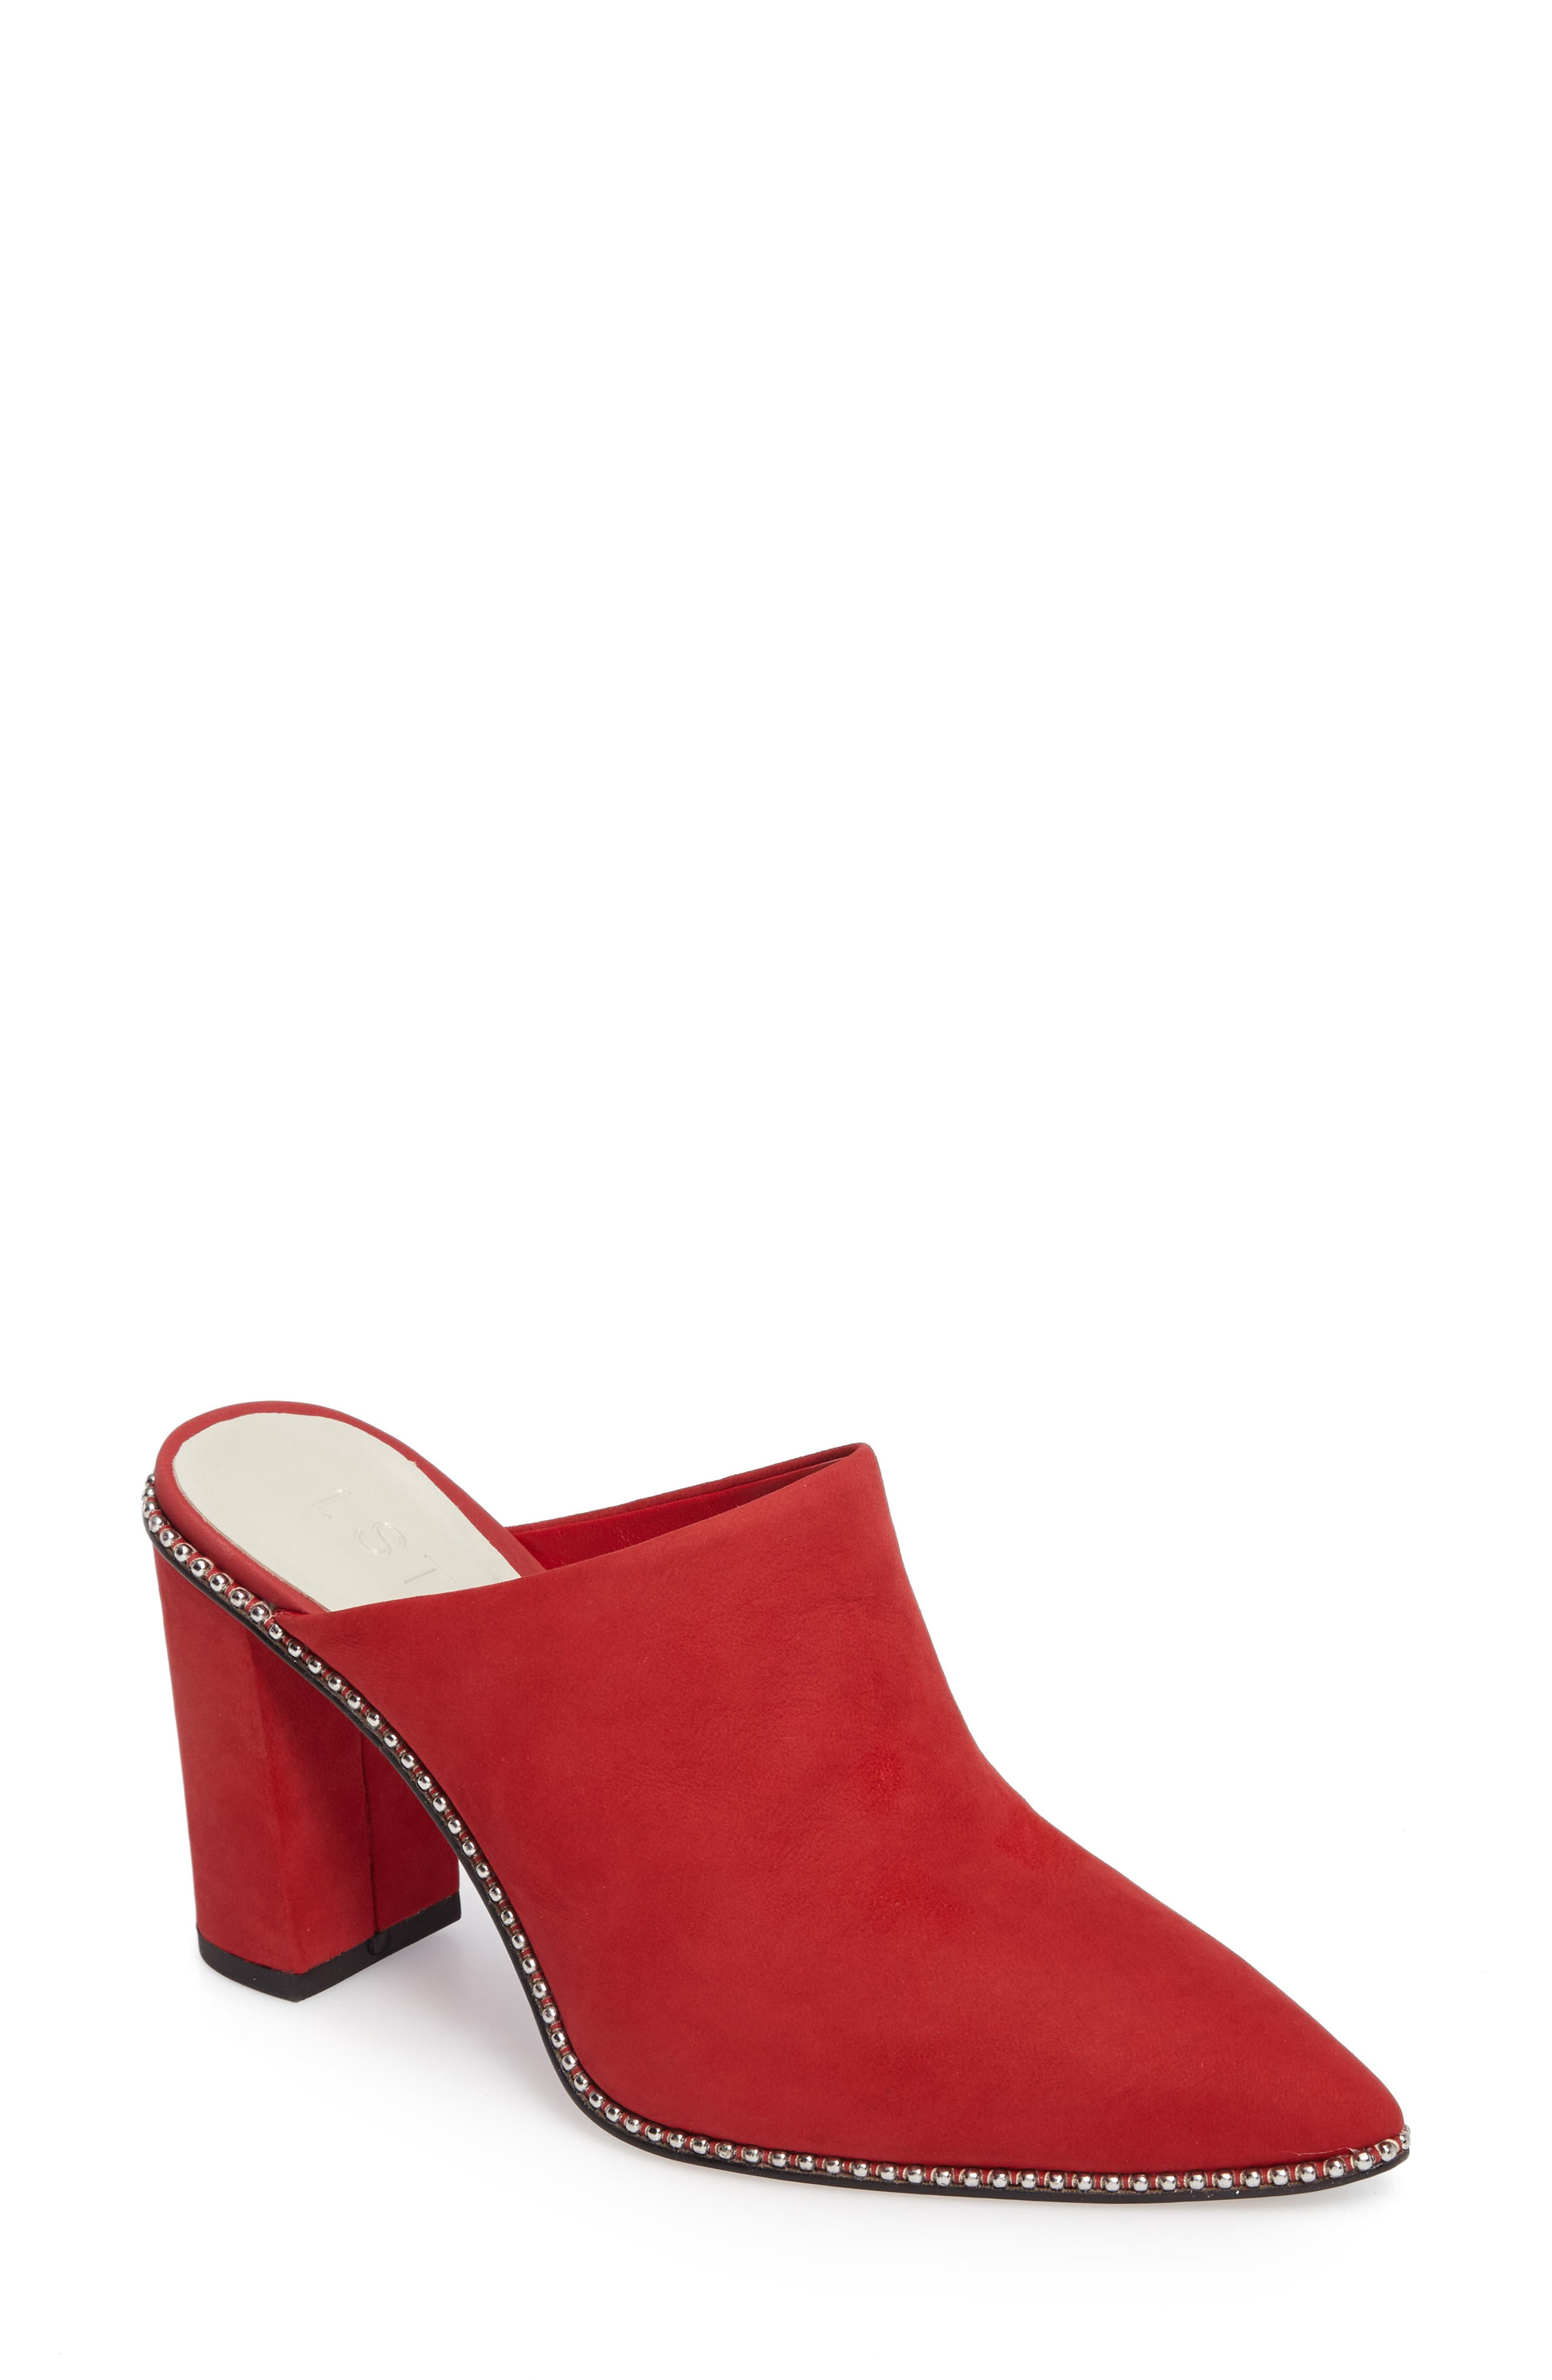 Relle Mule,                         Main,                         color, Scarlet Leather